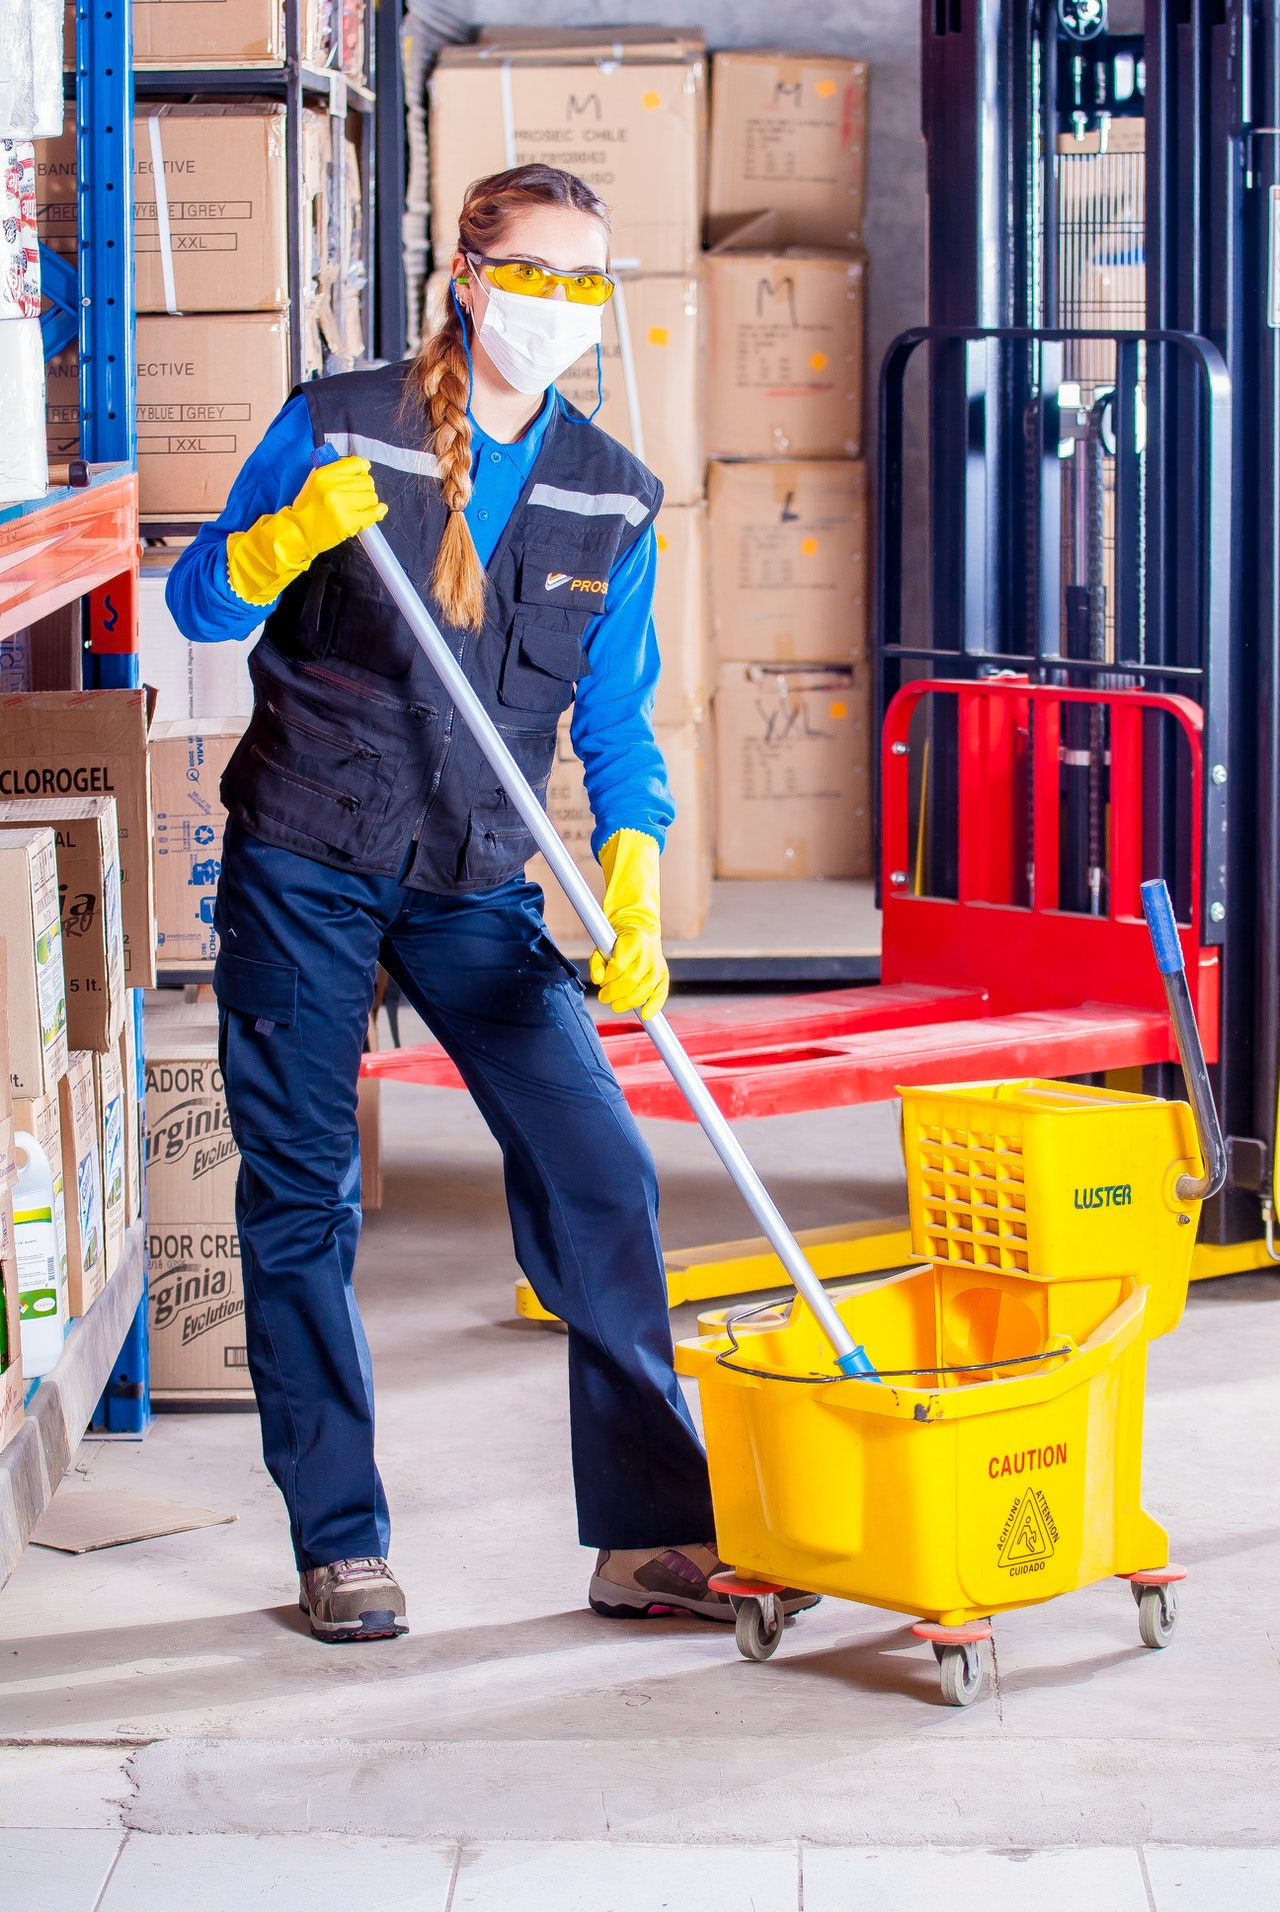 3 Reasons Why Hiring a Cleaning Service Might Be Right for You